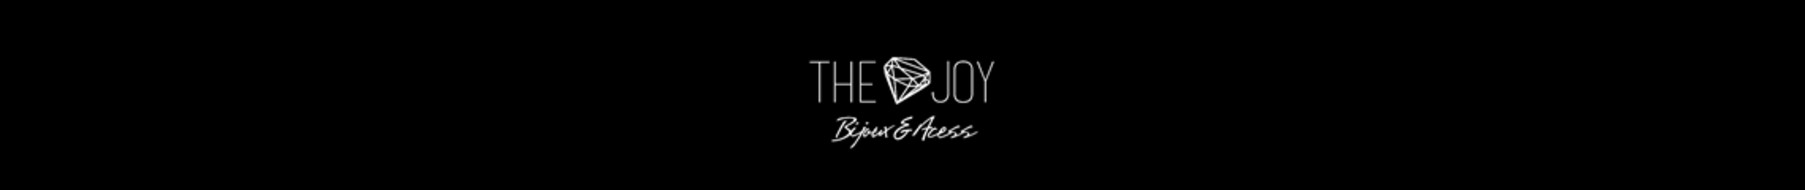 The Joy Bijoux & Acess